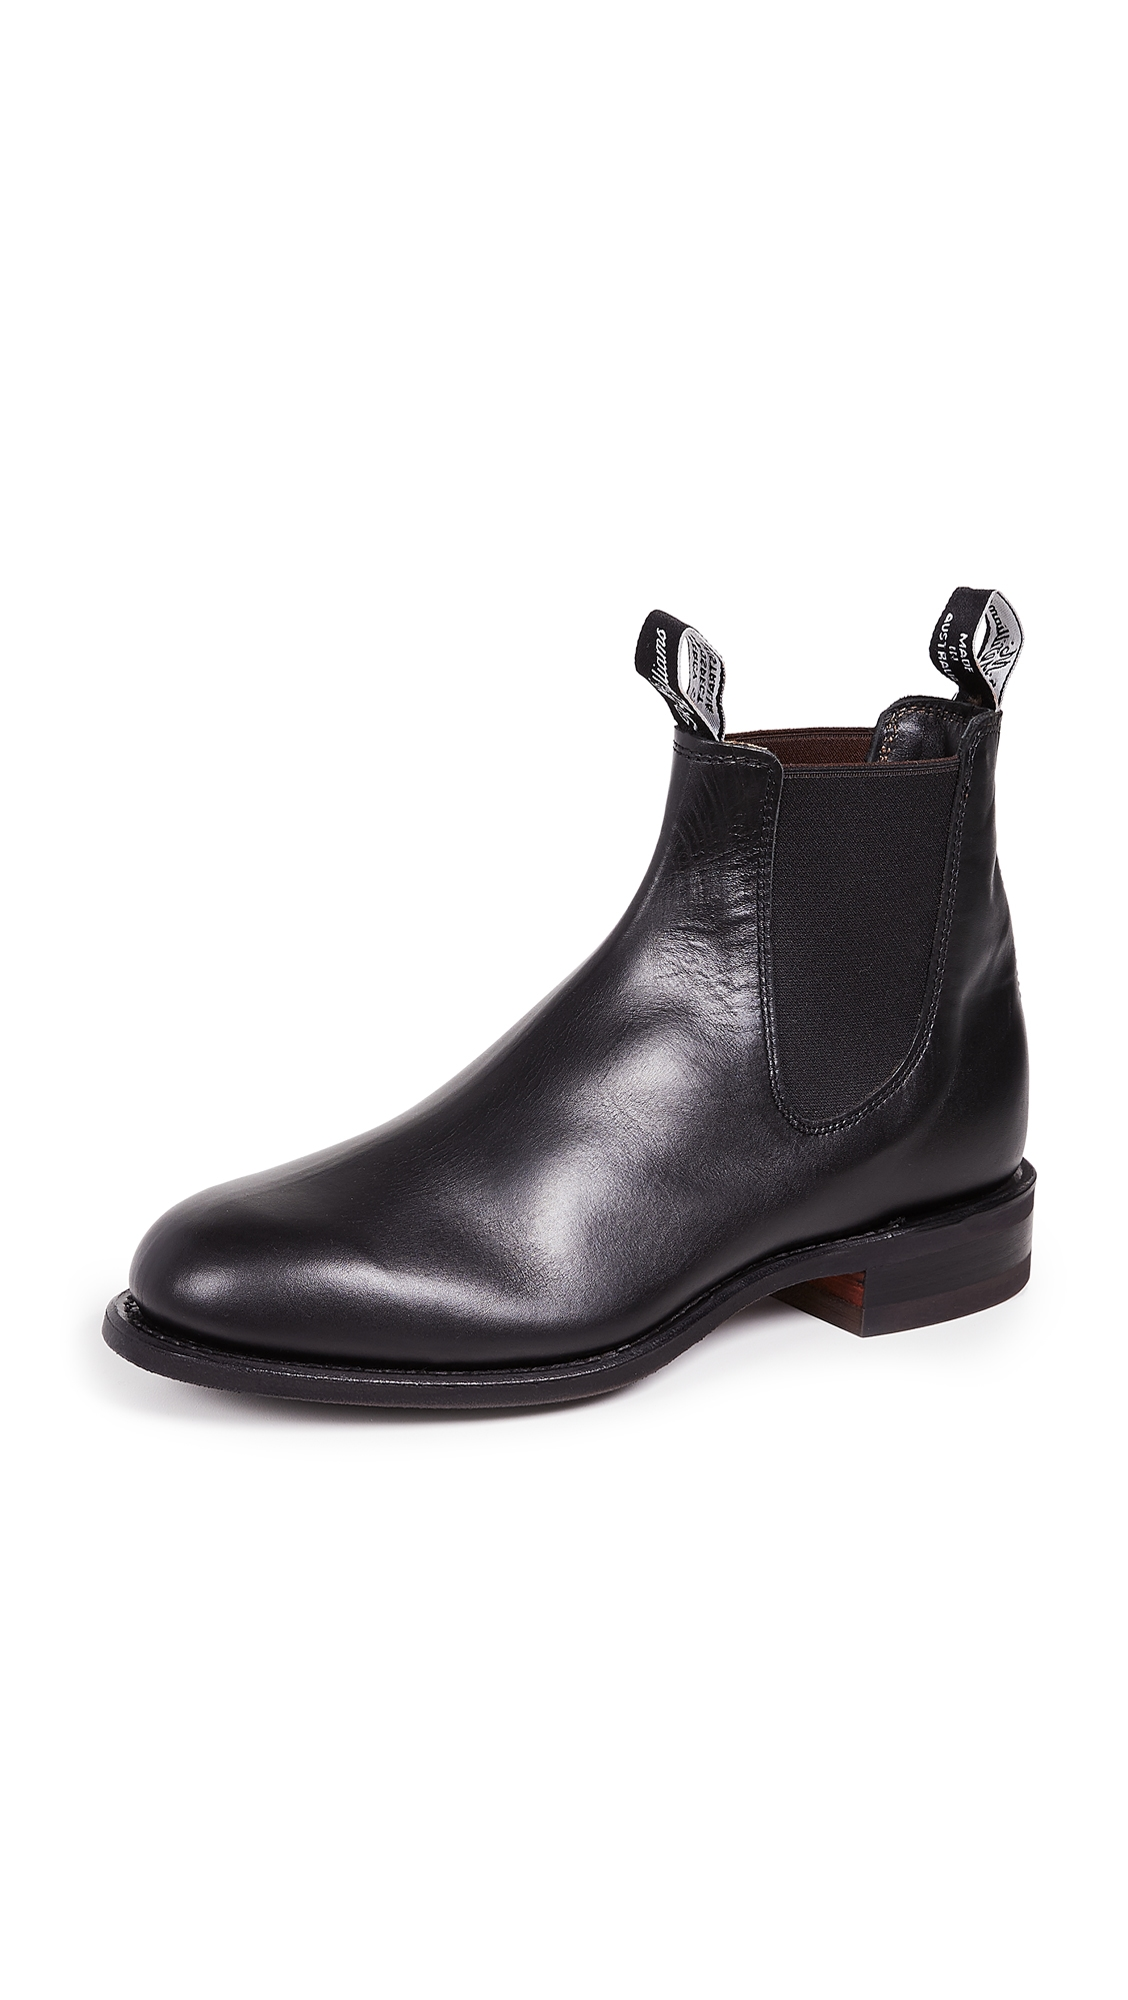 R.M.WILLIAMS COMFORT TURNOUT BOOTS